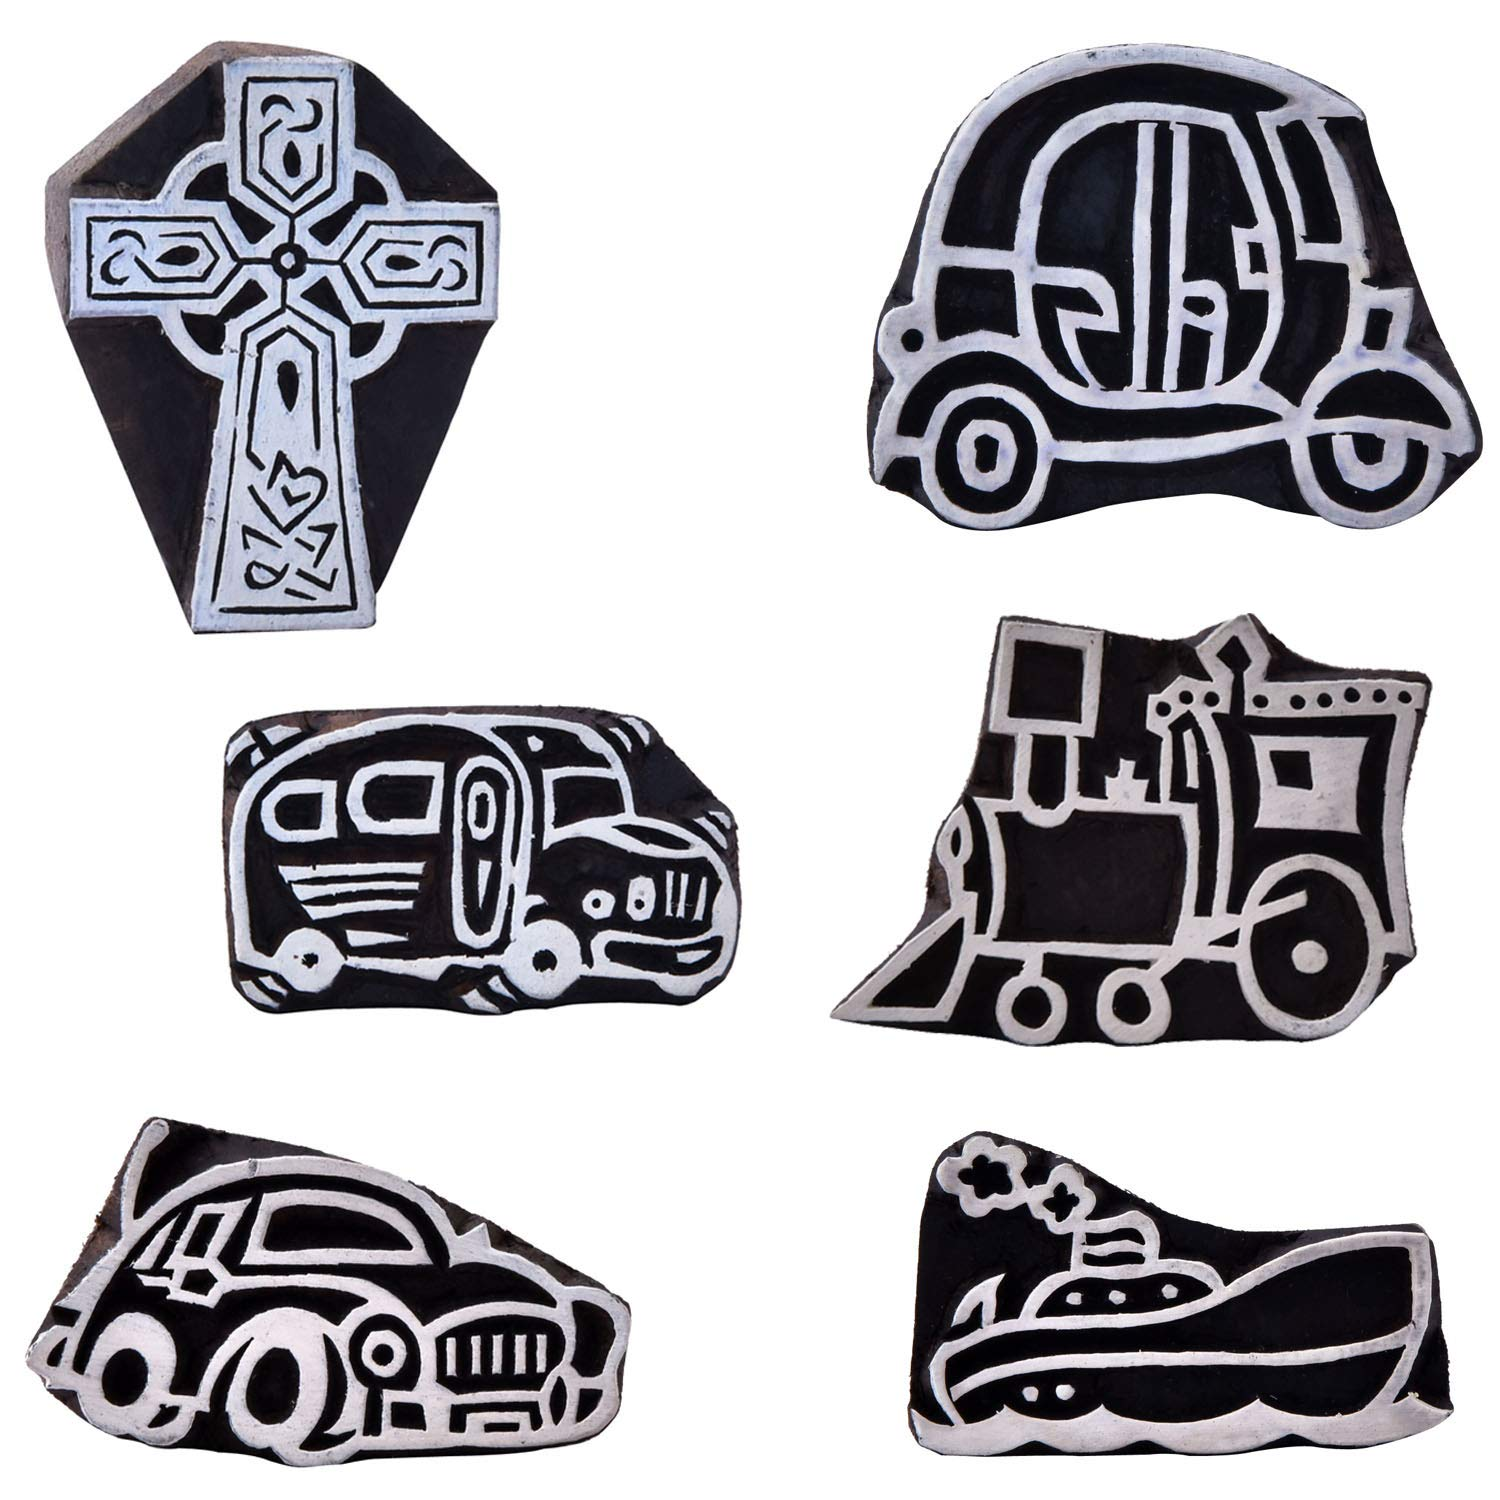 Vehicle and Jesus Cross Handmade Wood Stamp Pottery Printing Block Textile Paper Printing Clay Project Set of 6 by CraftyArt